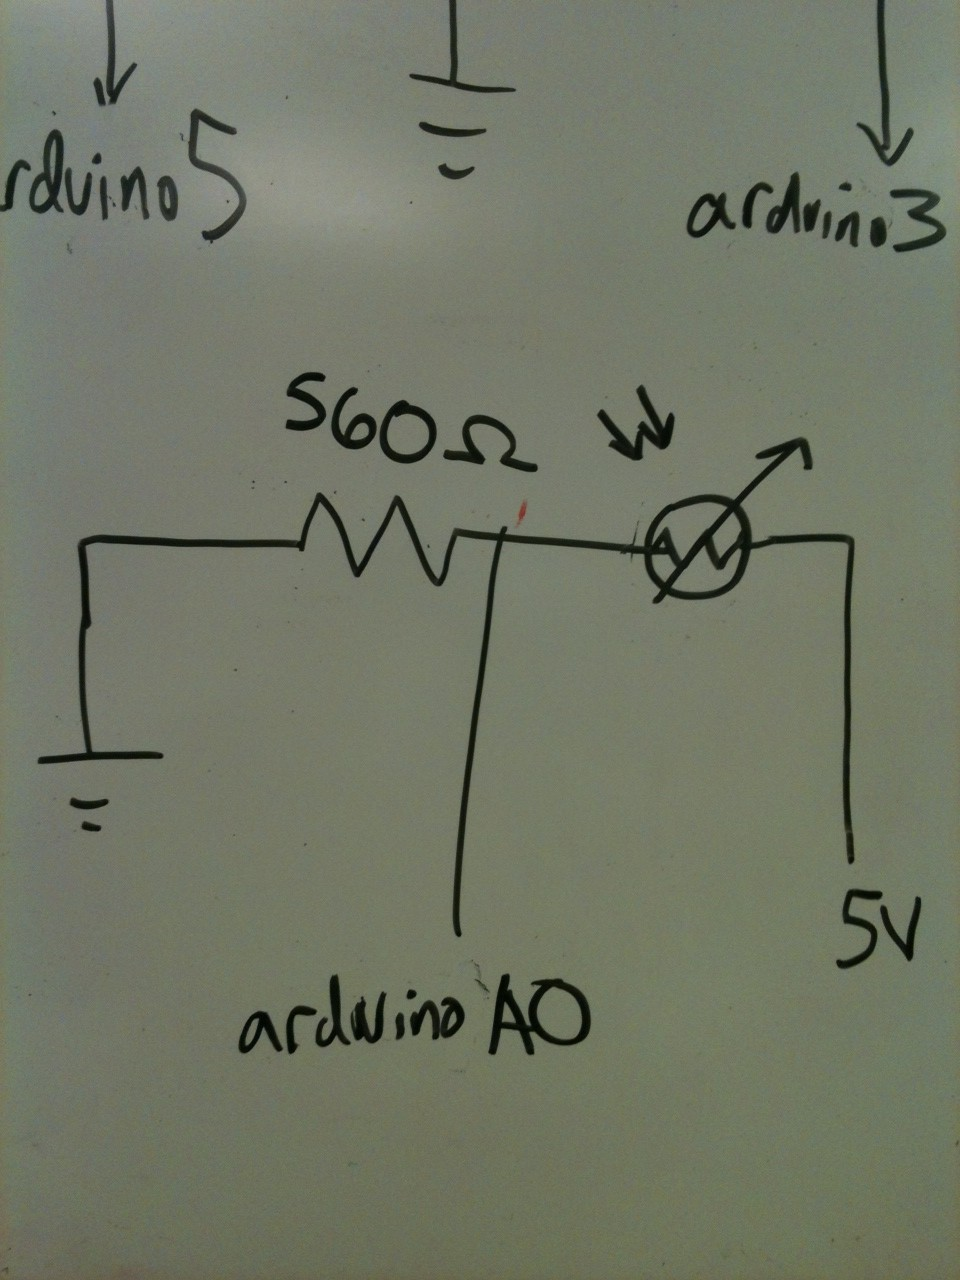 The photocell input circuit